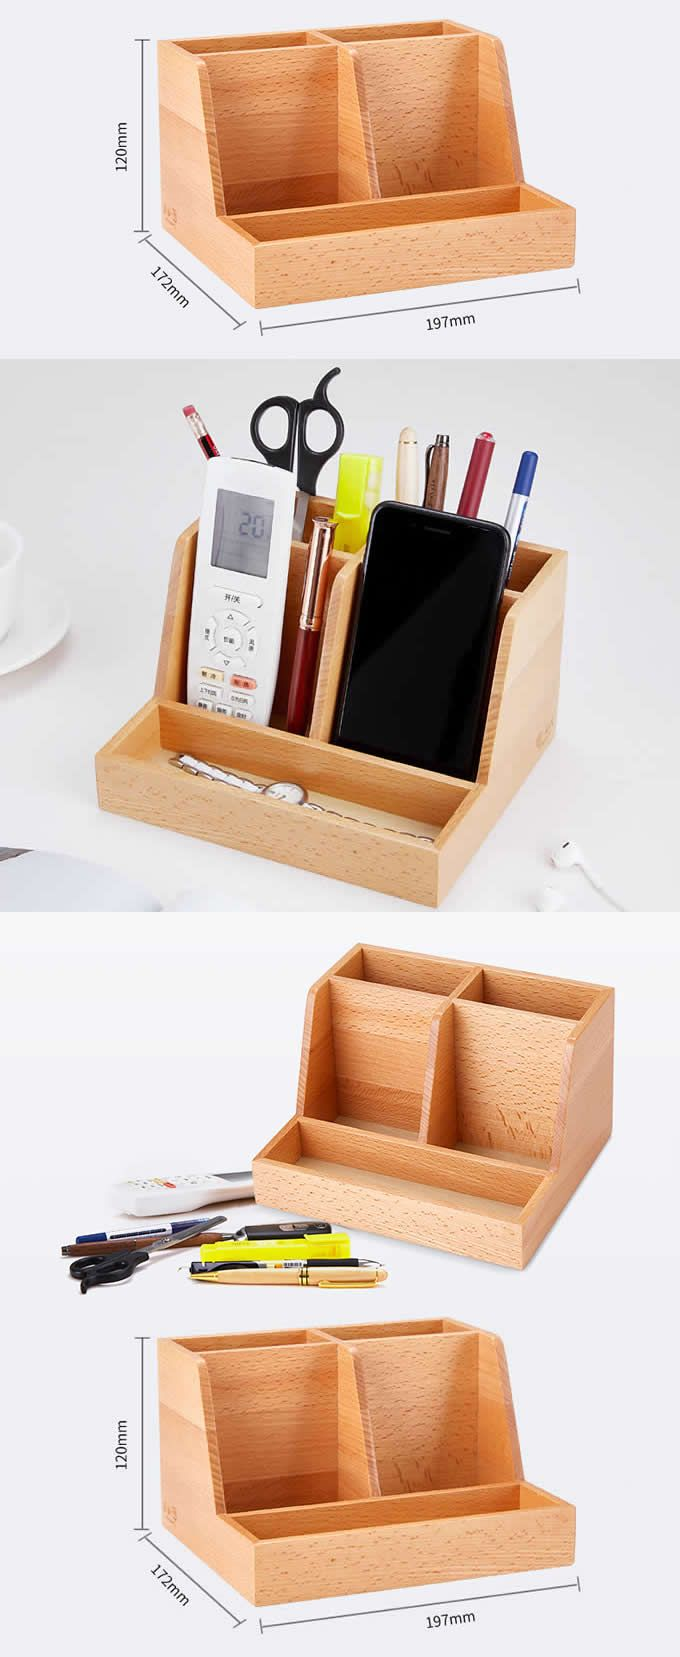 Provided Multifunctional Office Desktop Decor Storage Box Leather Stationery Organizer Pen Pencils Remote Control Mobile Phone Holder Ideal Gift For All Occasions Office & School Supplies